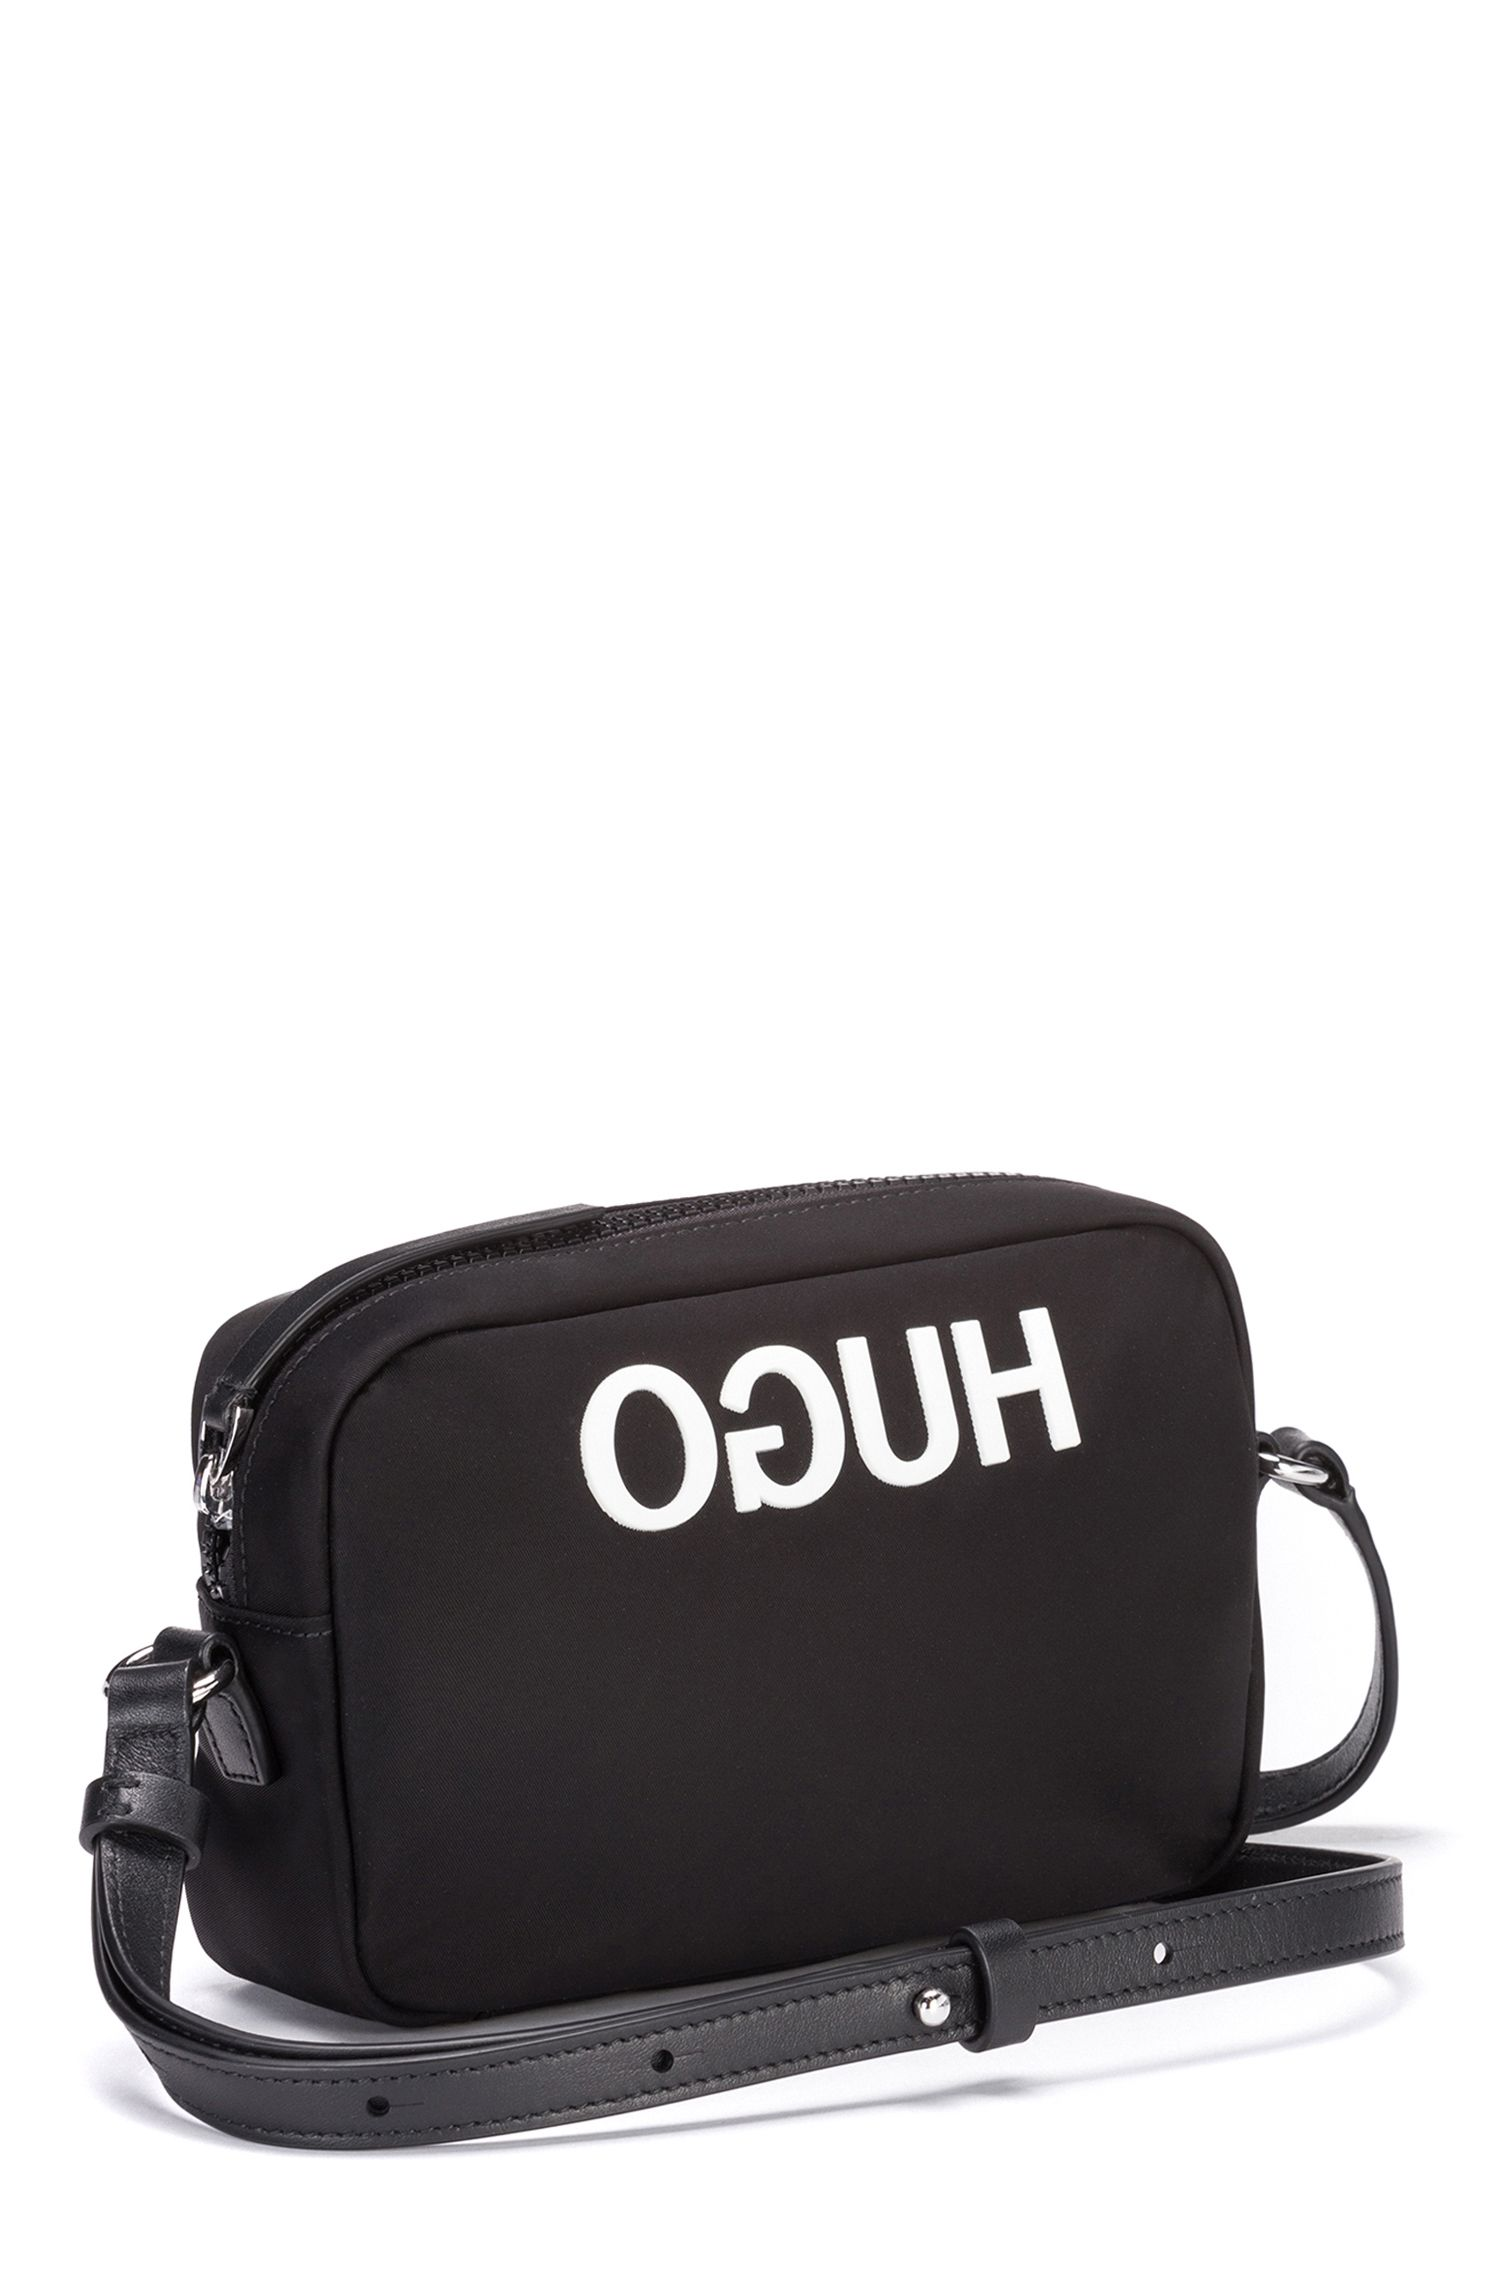 Reverse-logo crossbody bag in nylon gabardine, Black